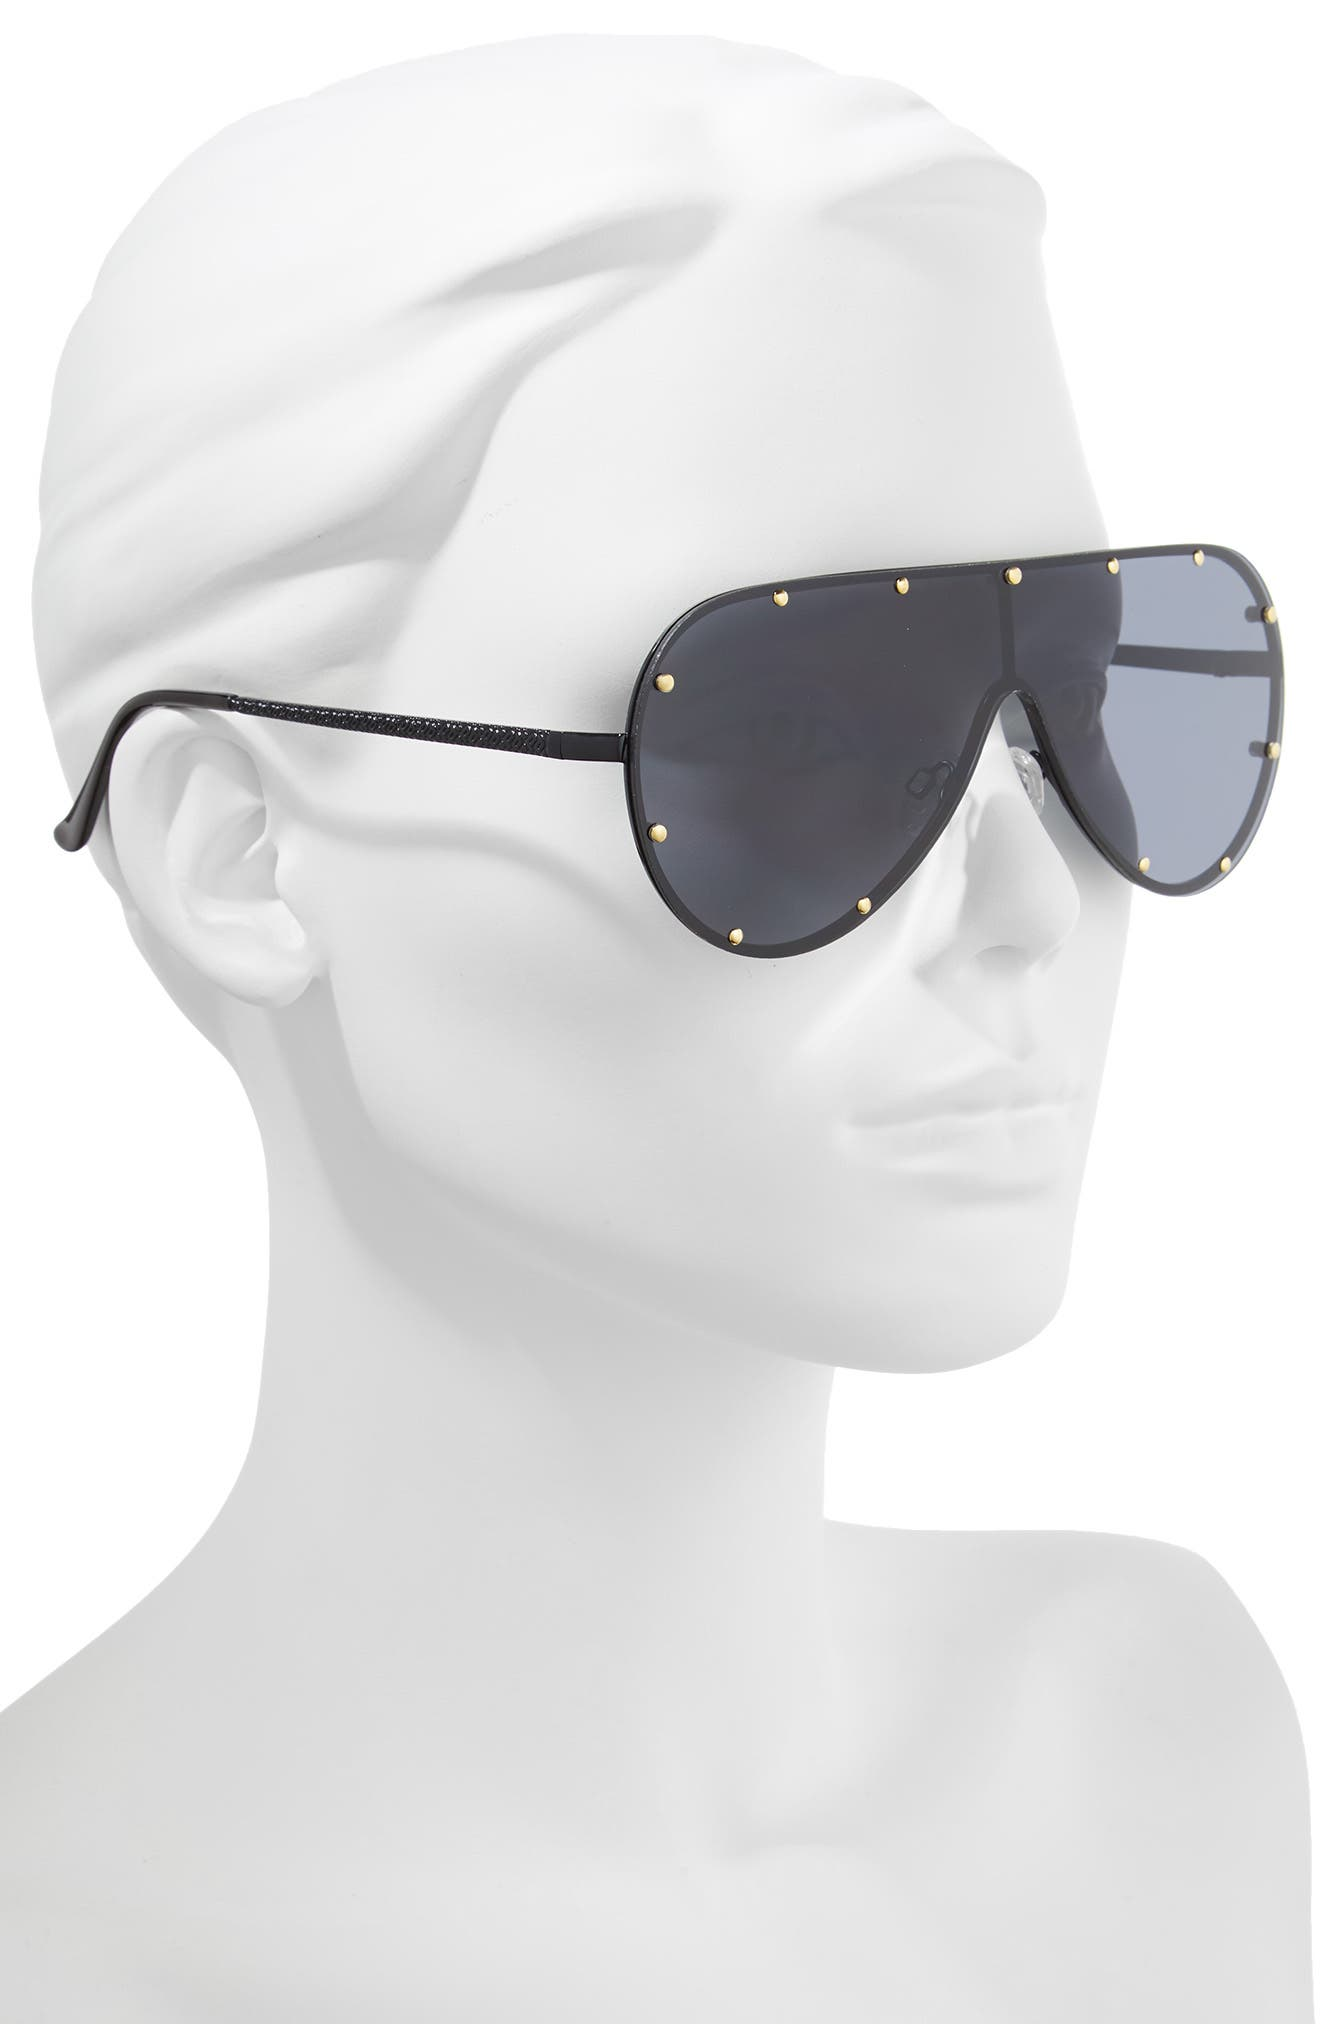 65mm Studded Shield Sunglasses,                             Alternate thumbnail 2, color,                             001